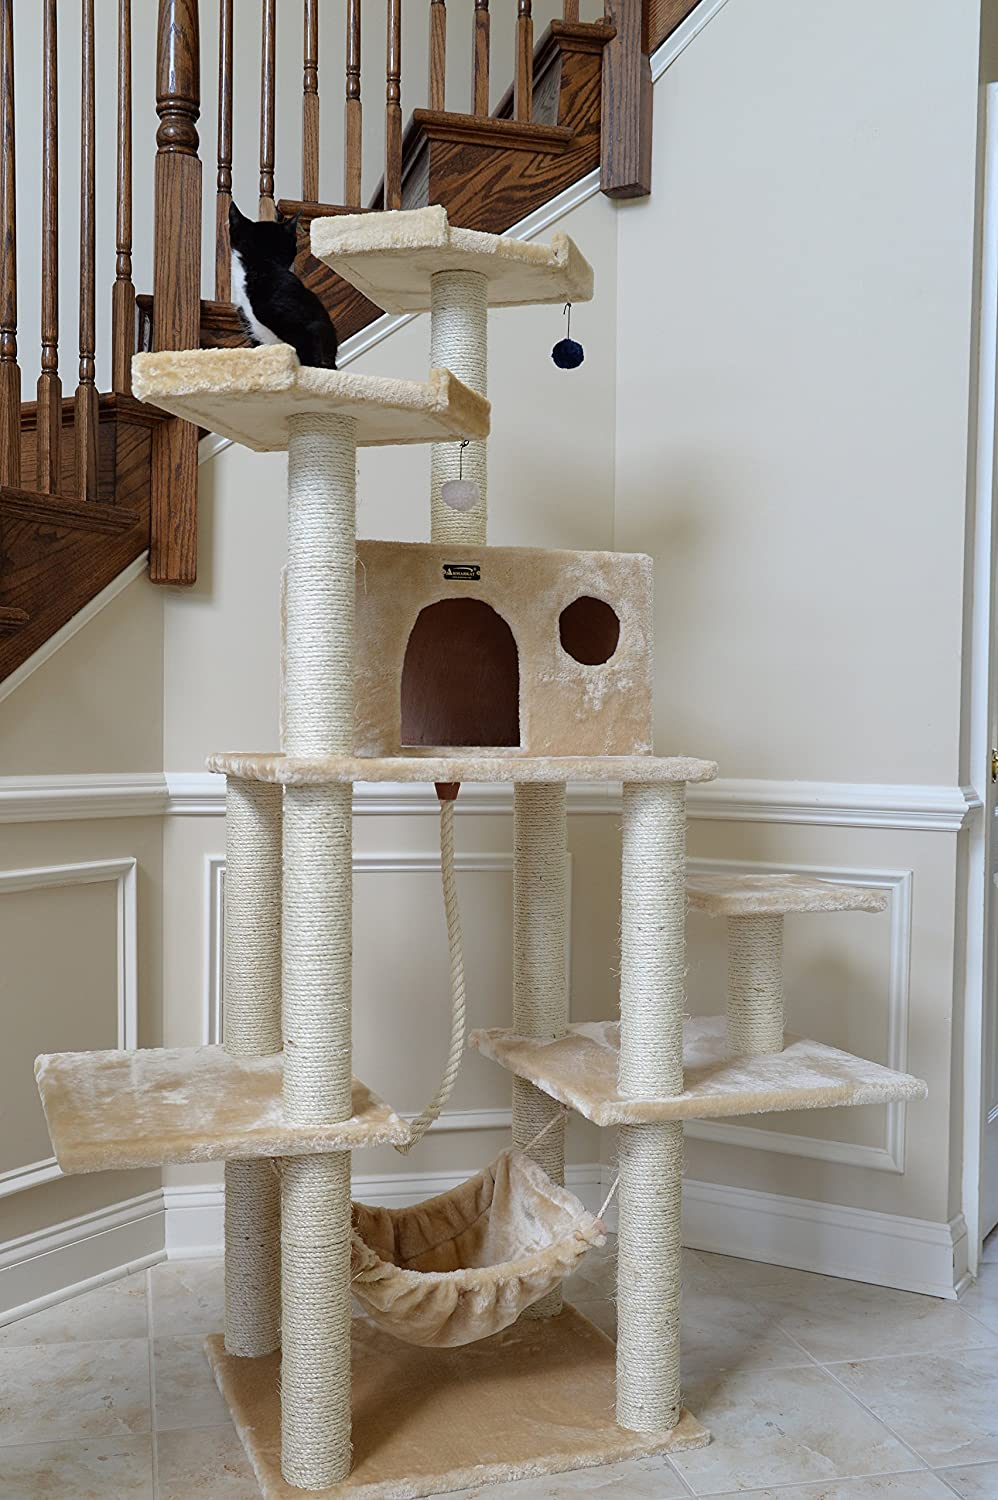 Amazon.com : Armarkat A7202 72-Inch Cat Tree, Beige Toys Black Friday Pet Supplies